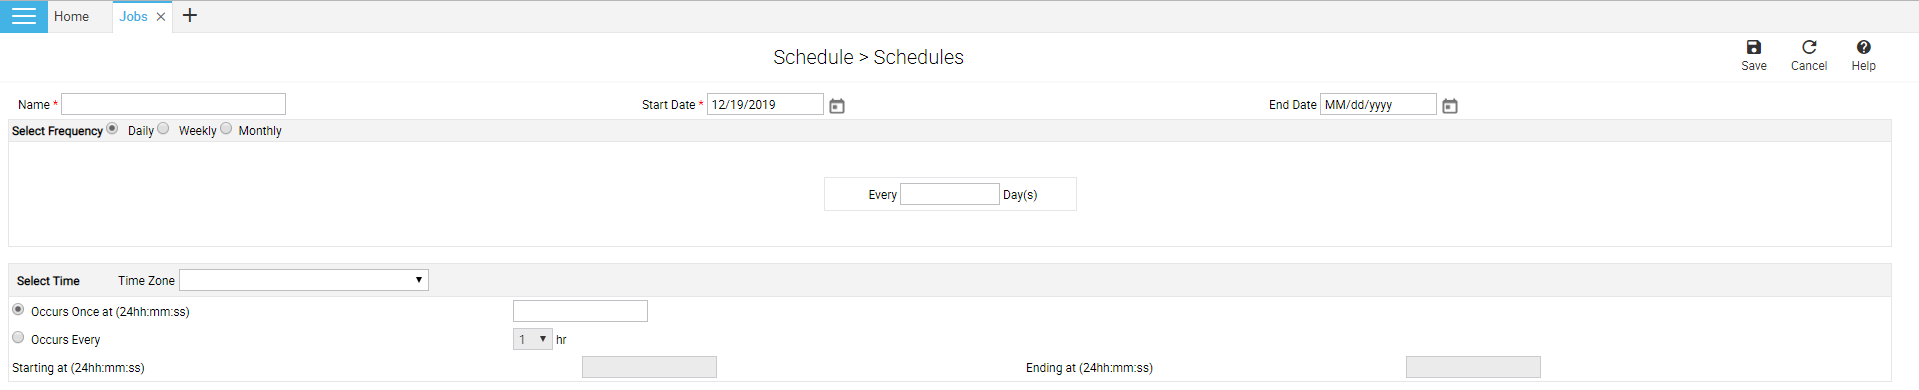 Add schedule page